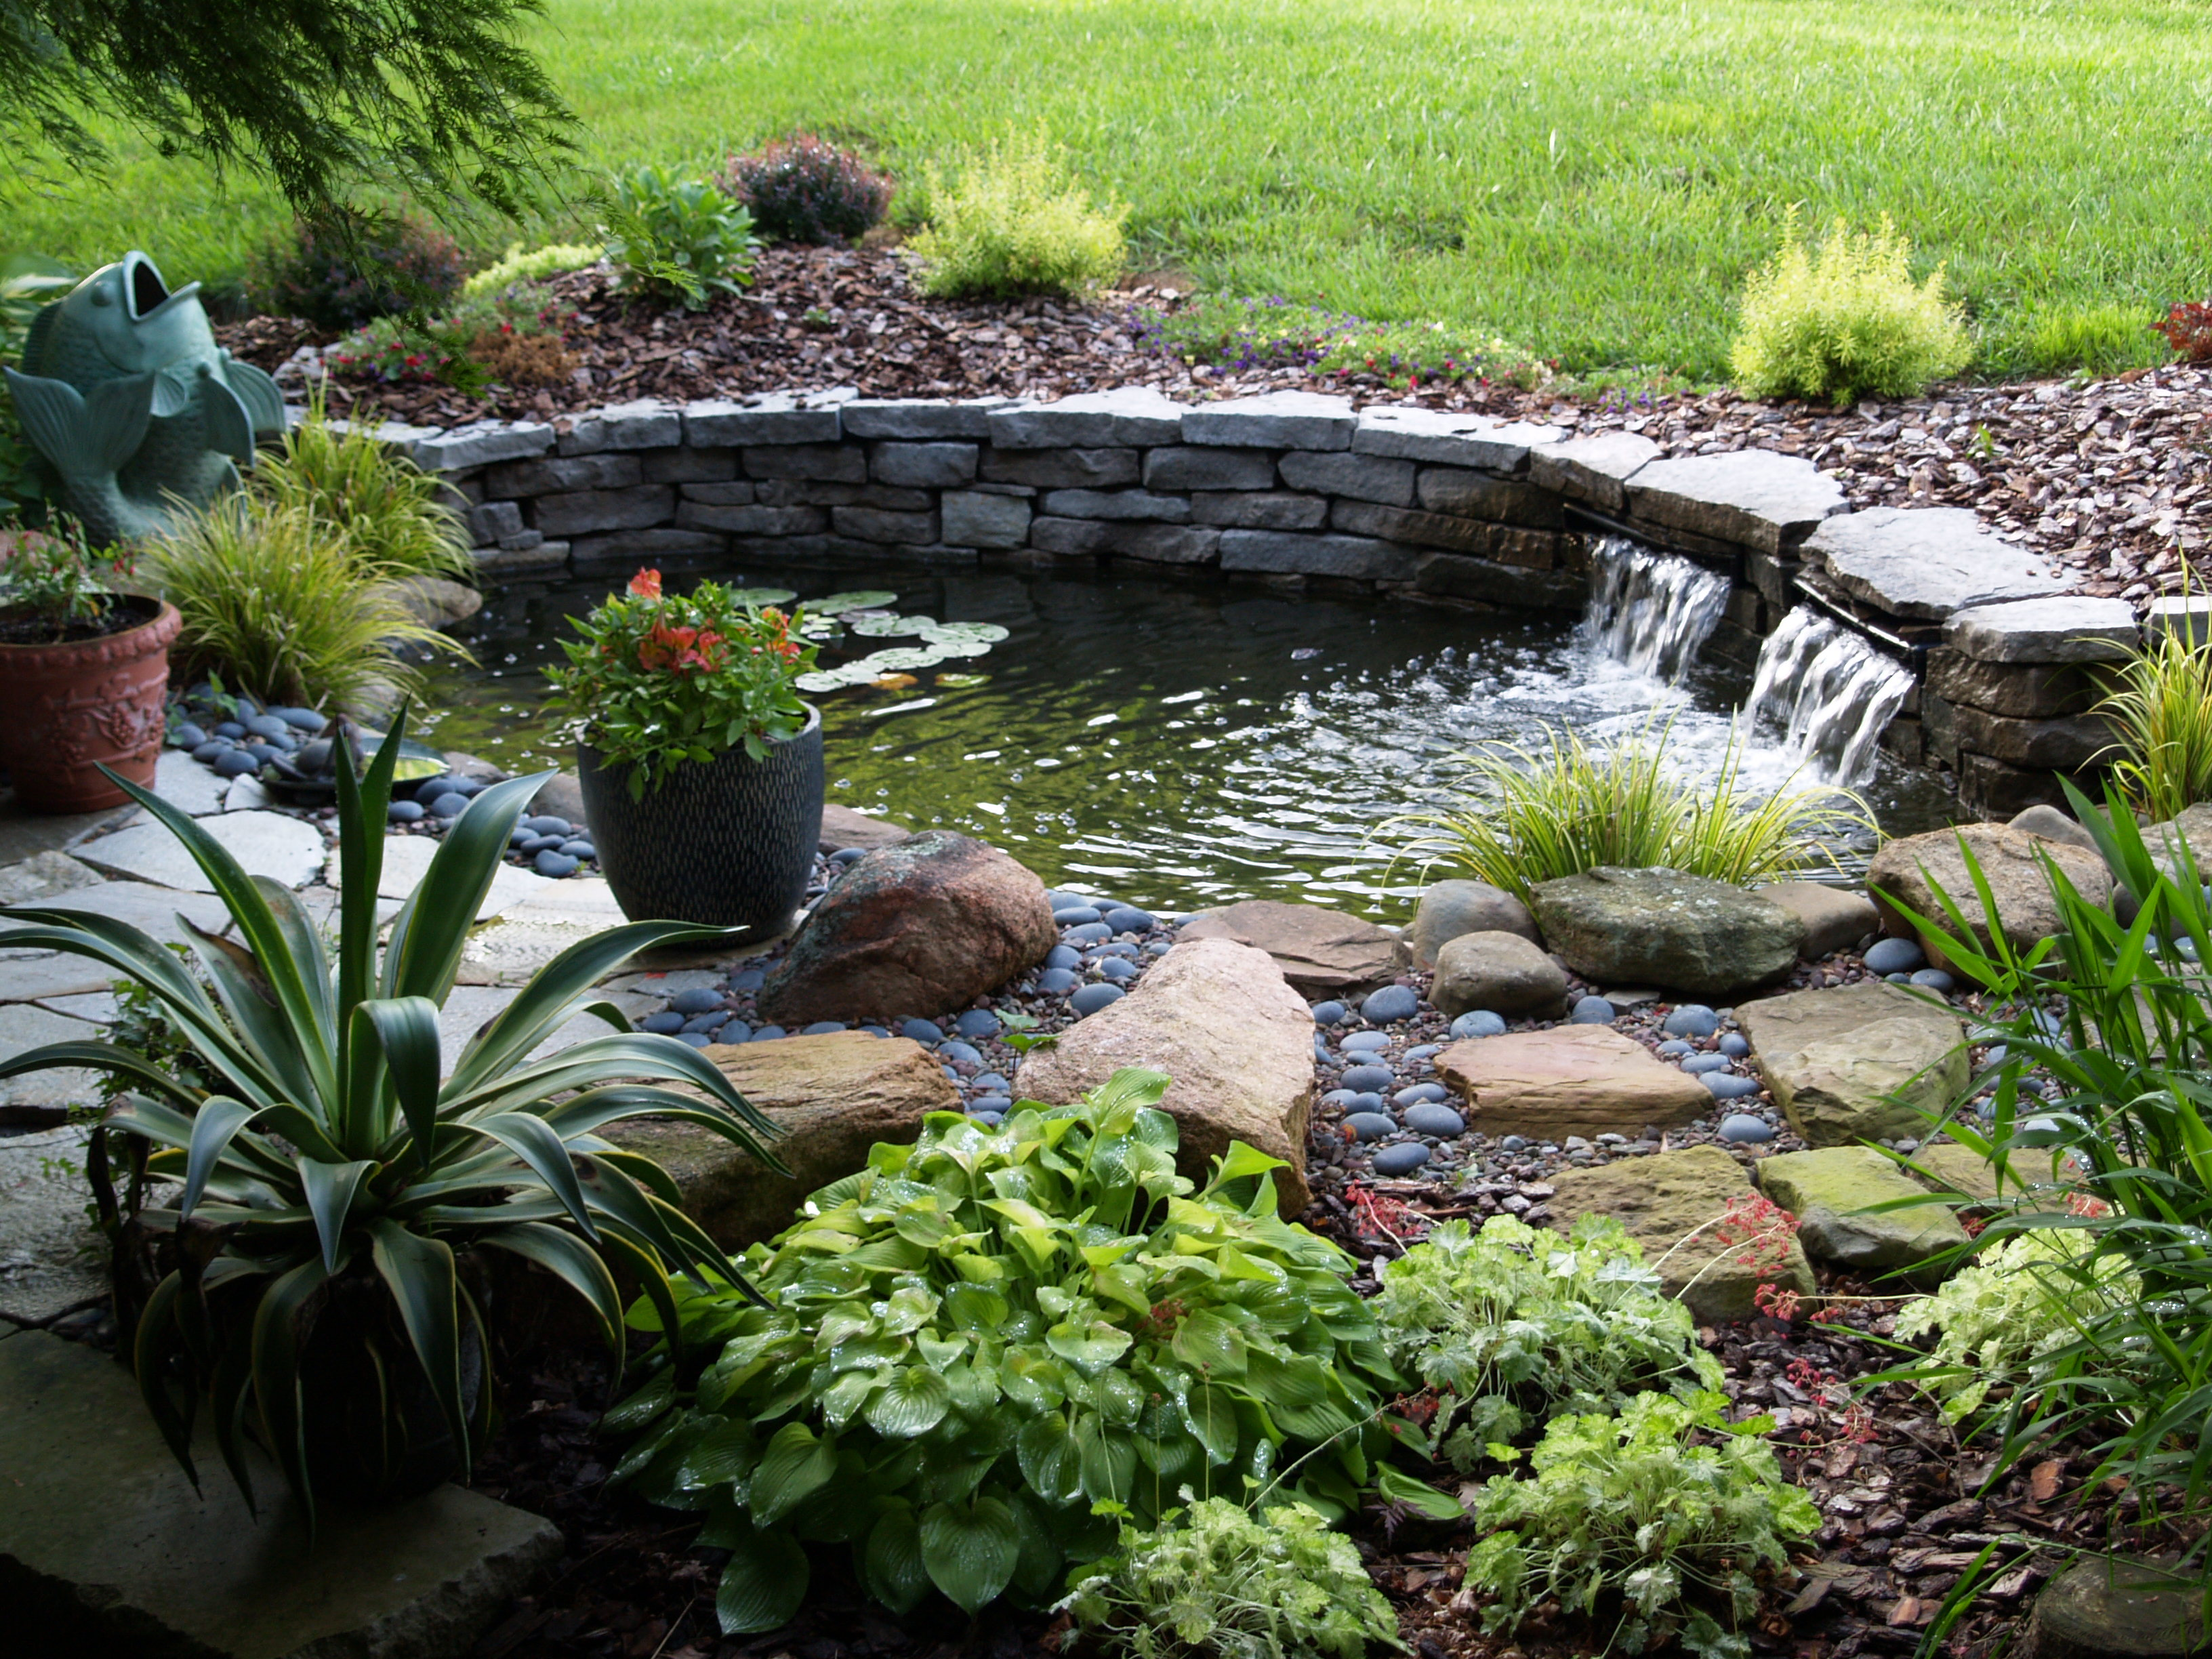 How to build a pond in your garden | HireRush Blog